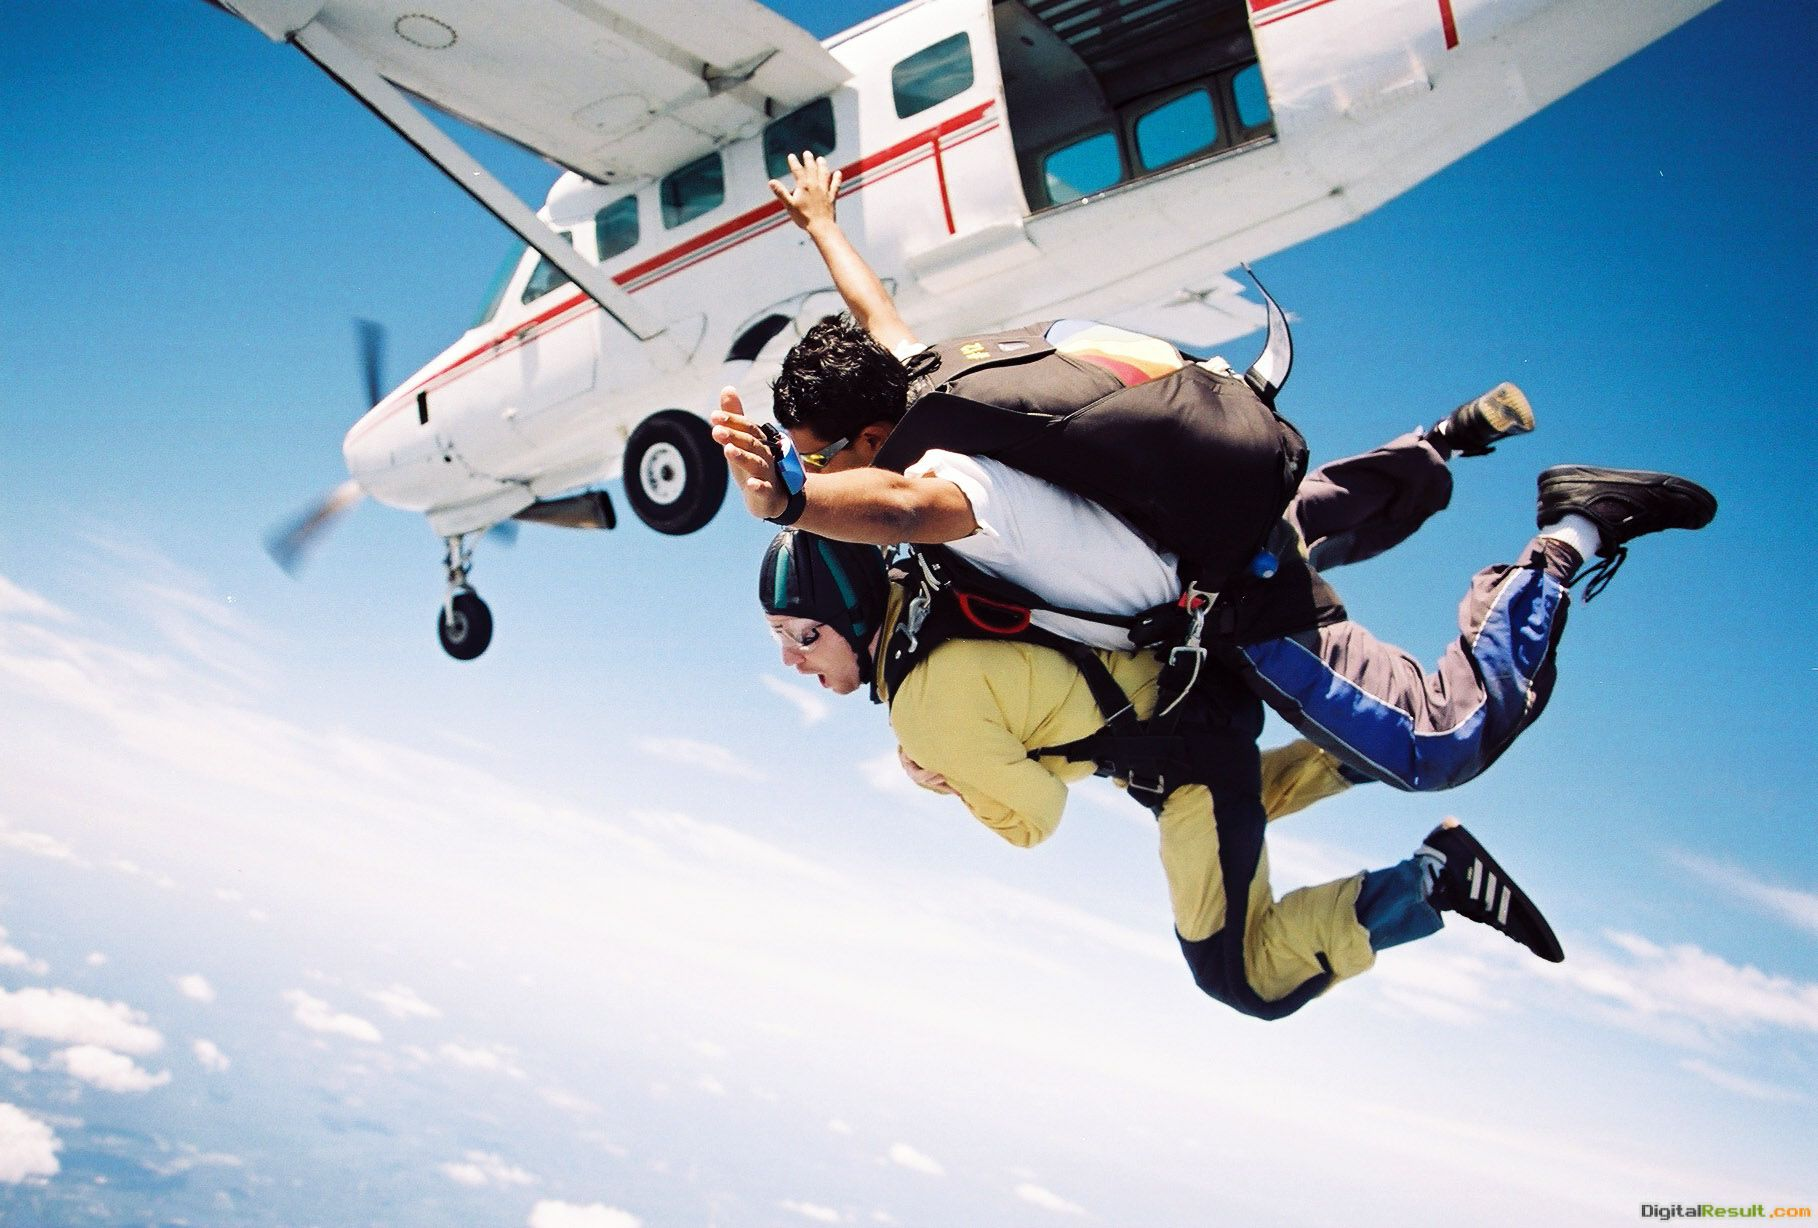 Cool Skydiving Pics New Games Like Skydiving Cool Car Skydiving Funny 1278